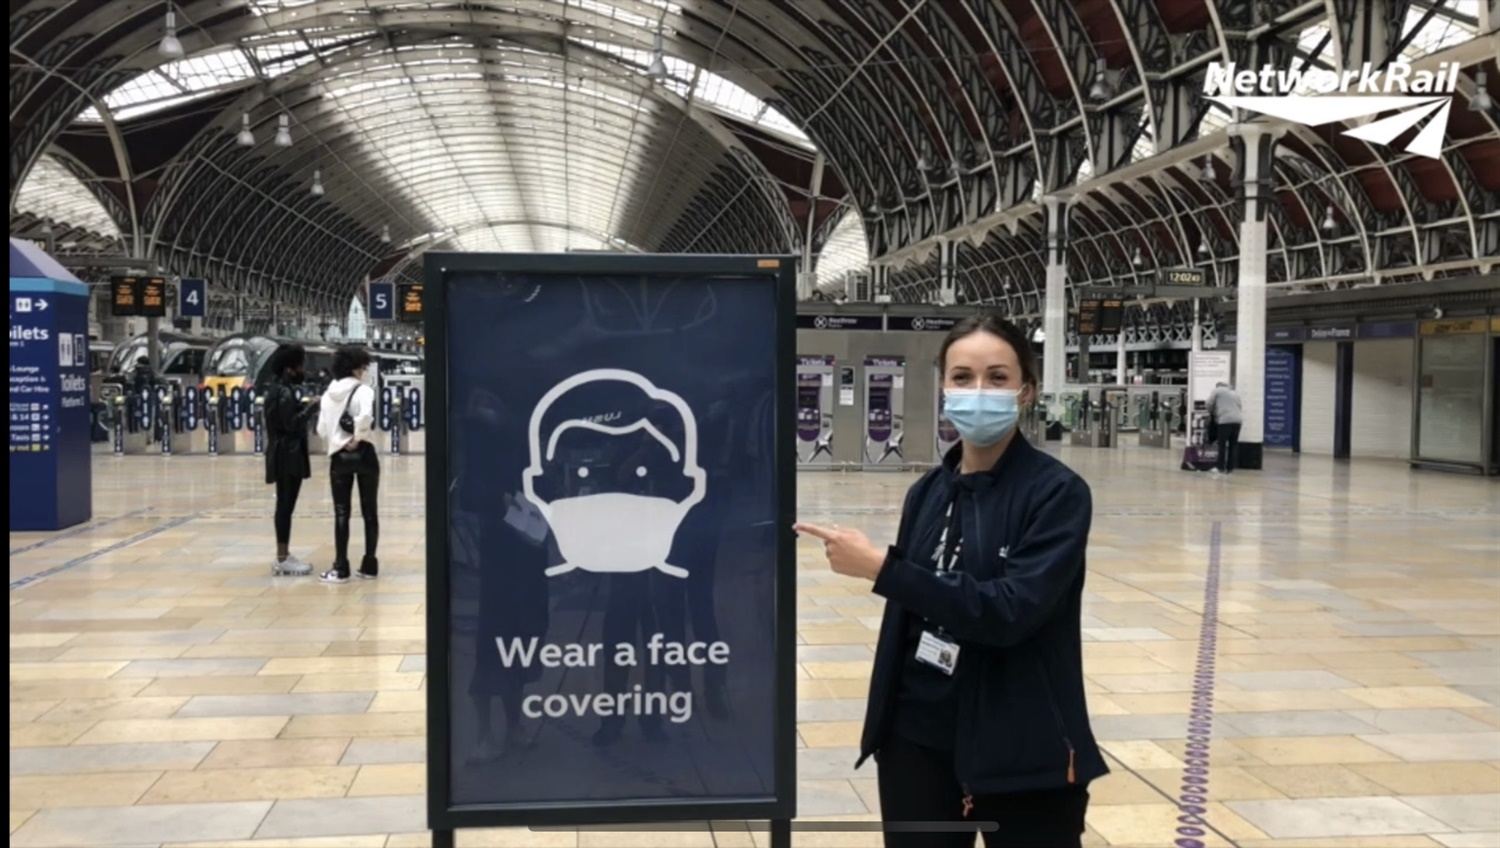 Rail passengers reminded of compulsory face coverings from today